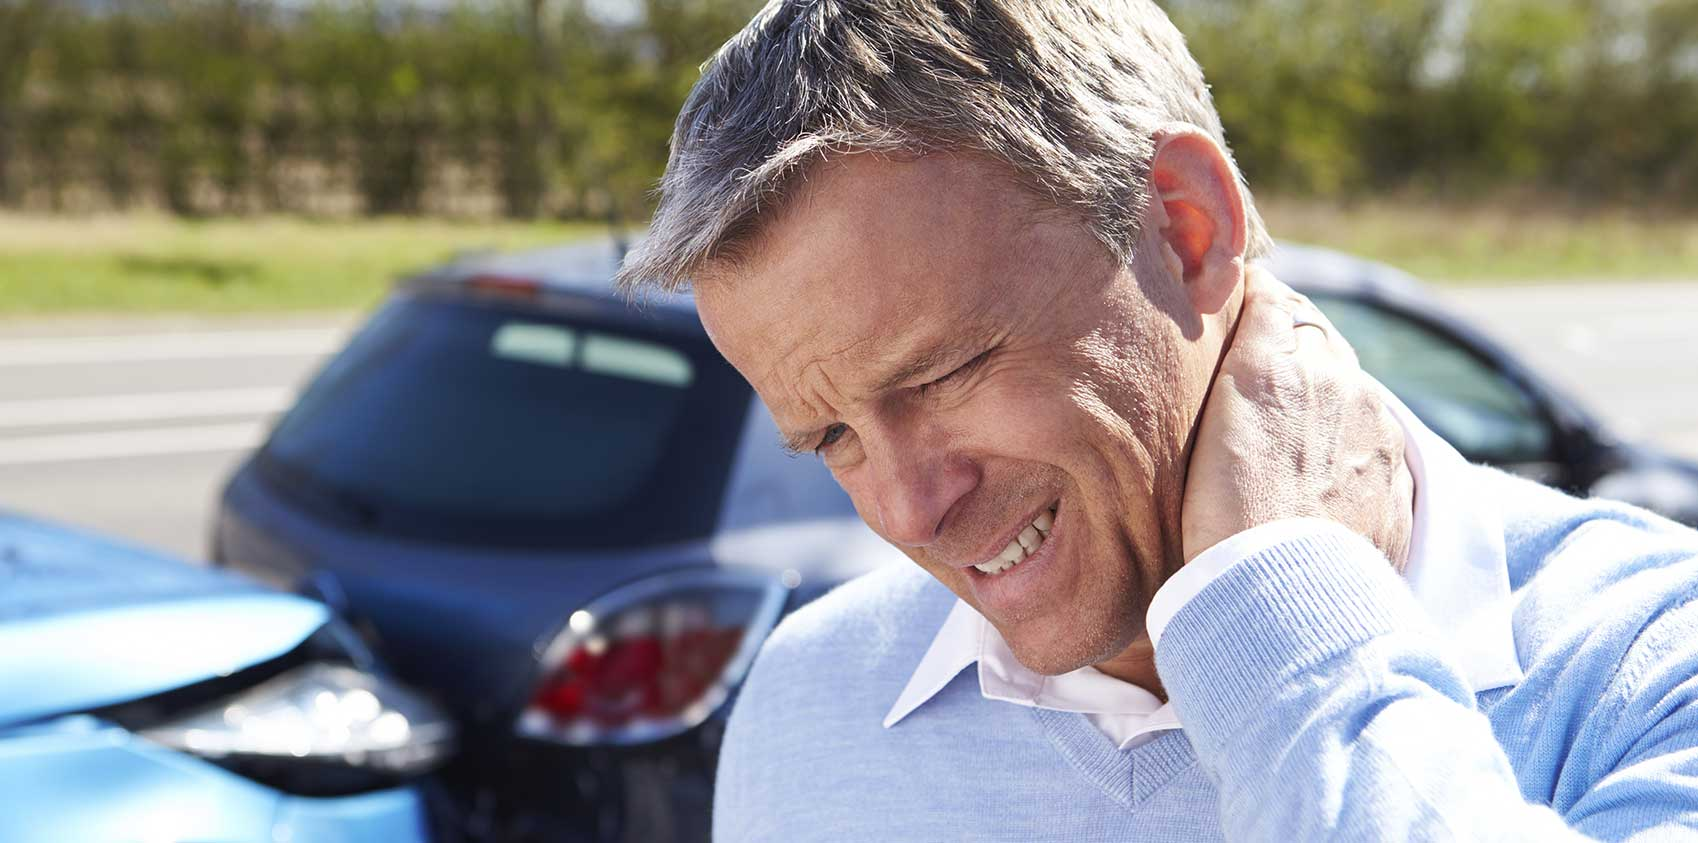 Vehicle Accident Recovery